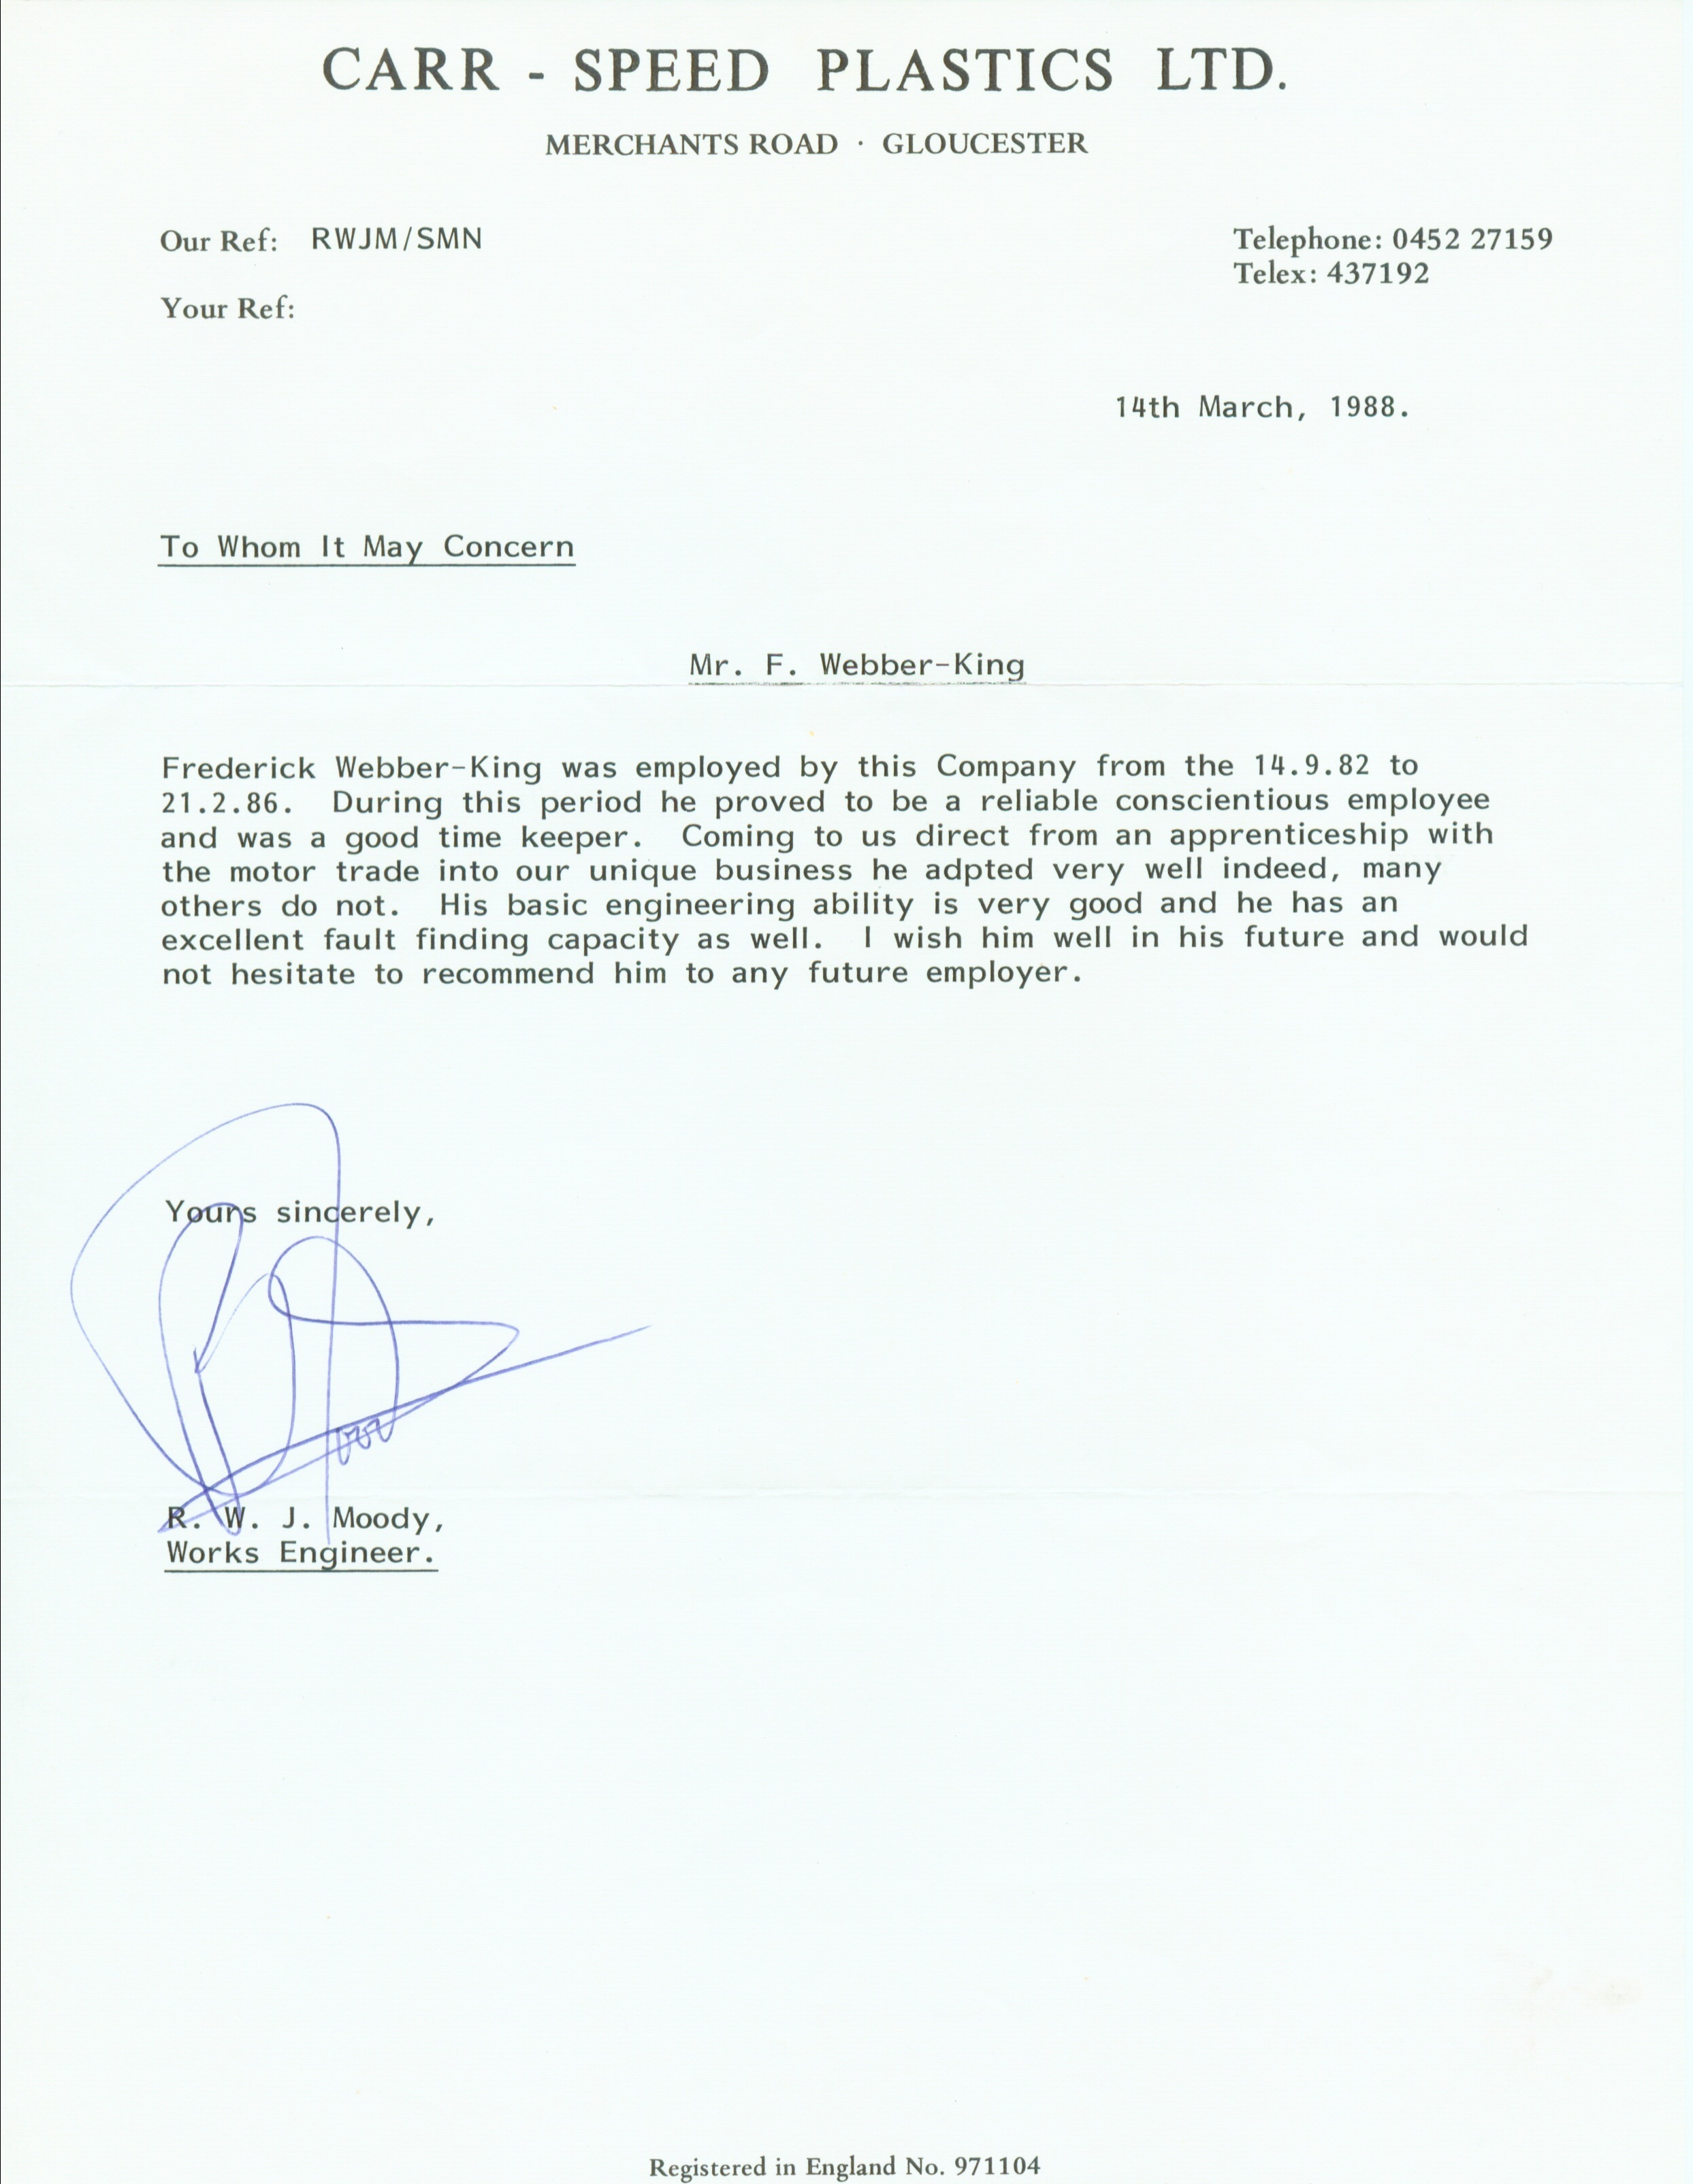 Reference Letter Carr-Speed Plastics - Richard Moody